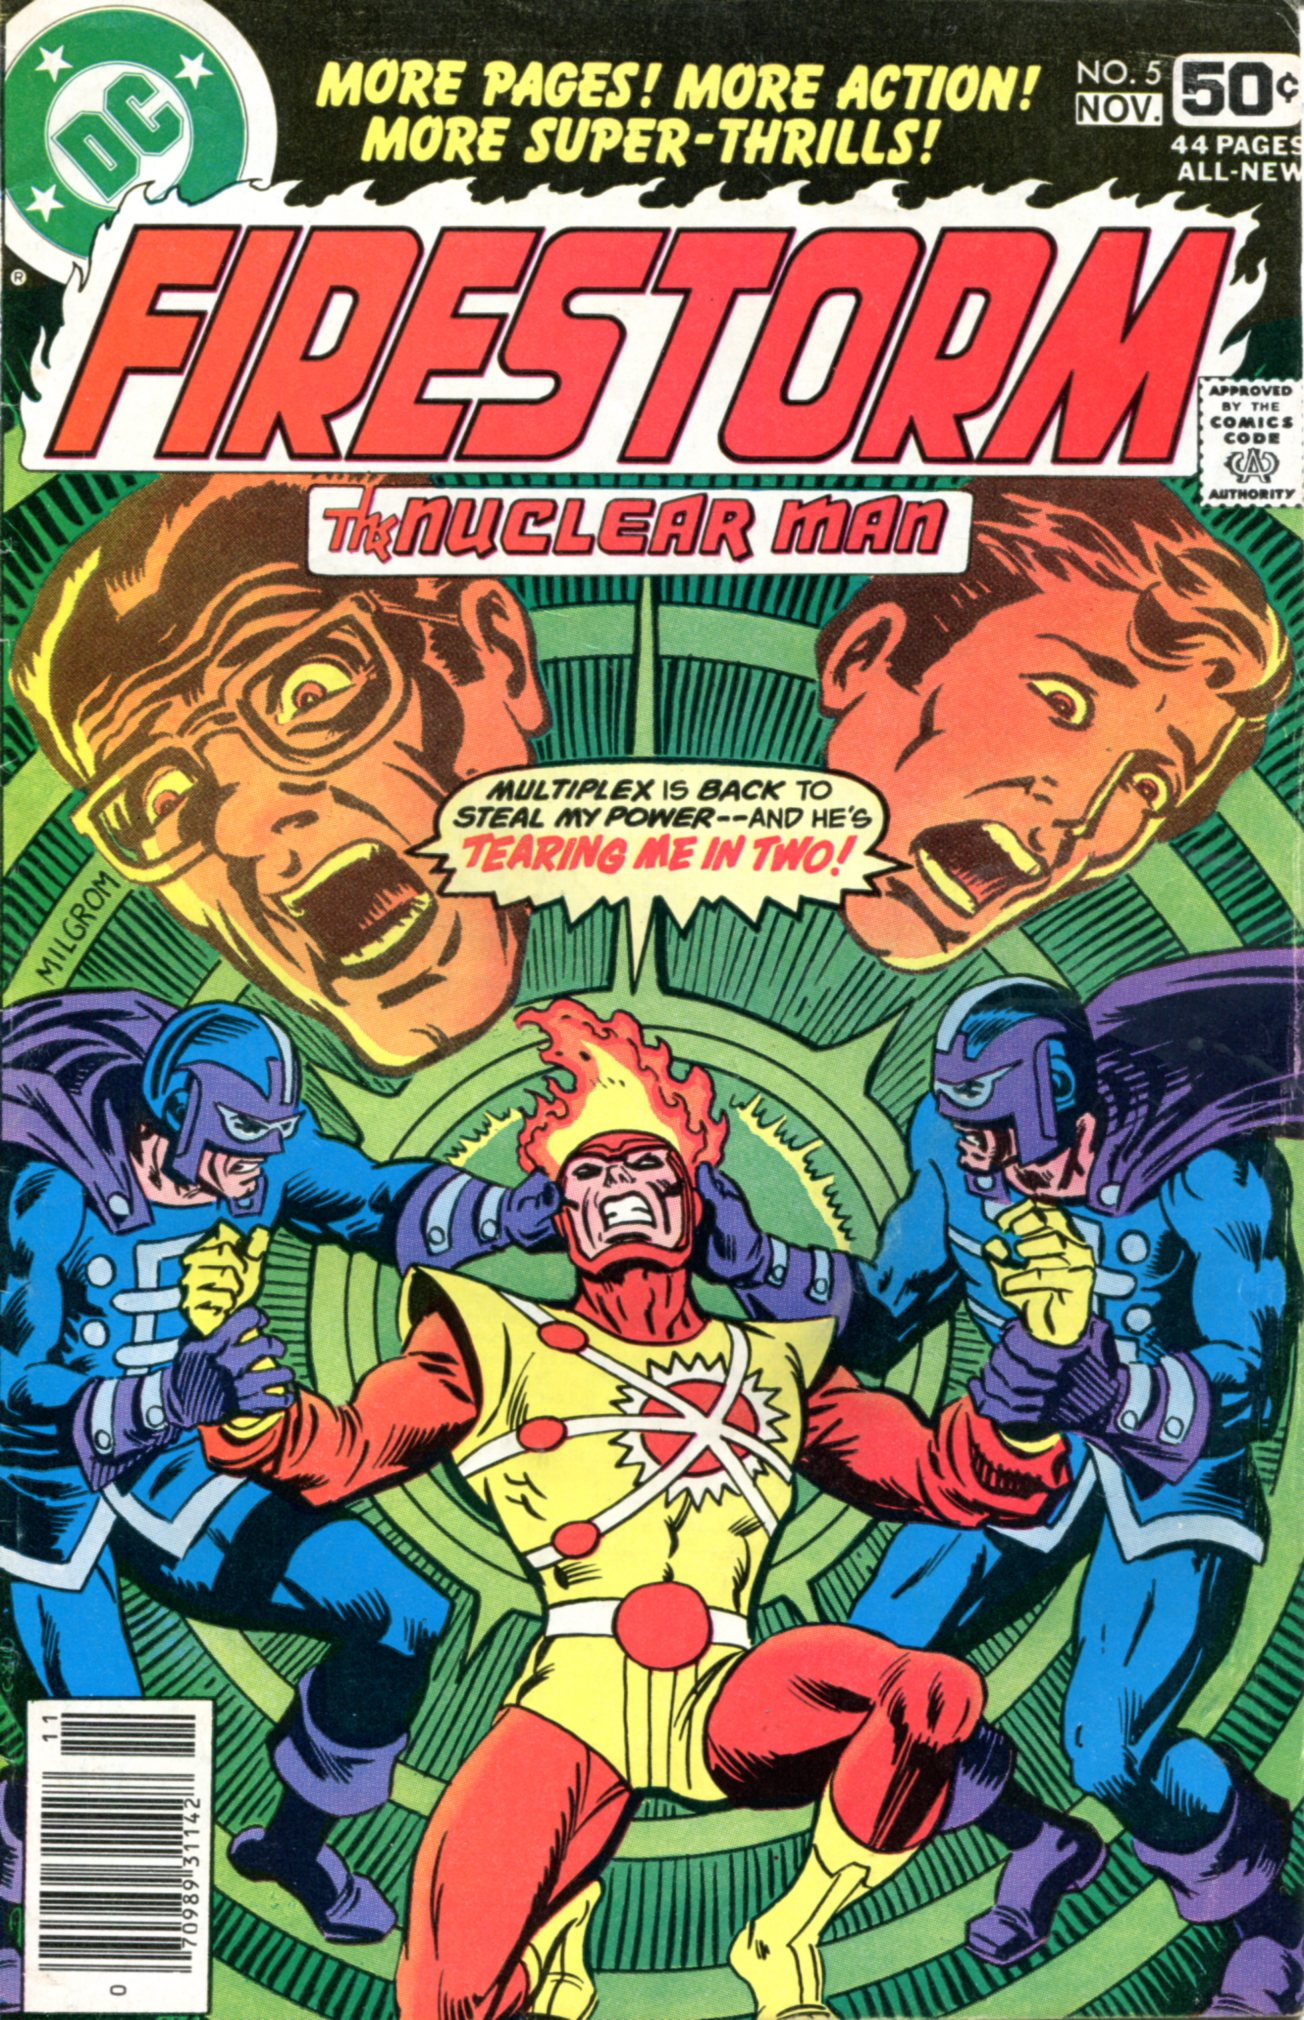 FIRESTORM THE NUCLEAR MAN I (1-5)